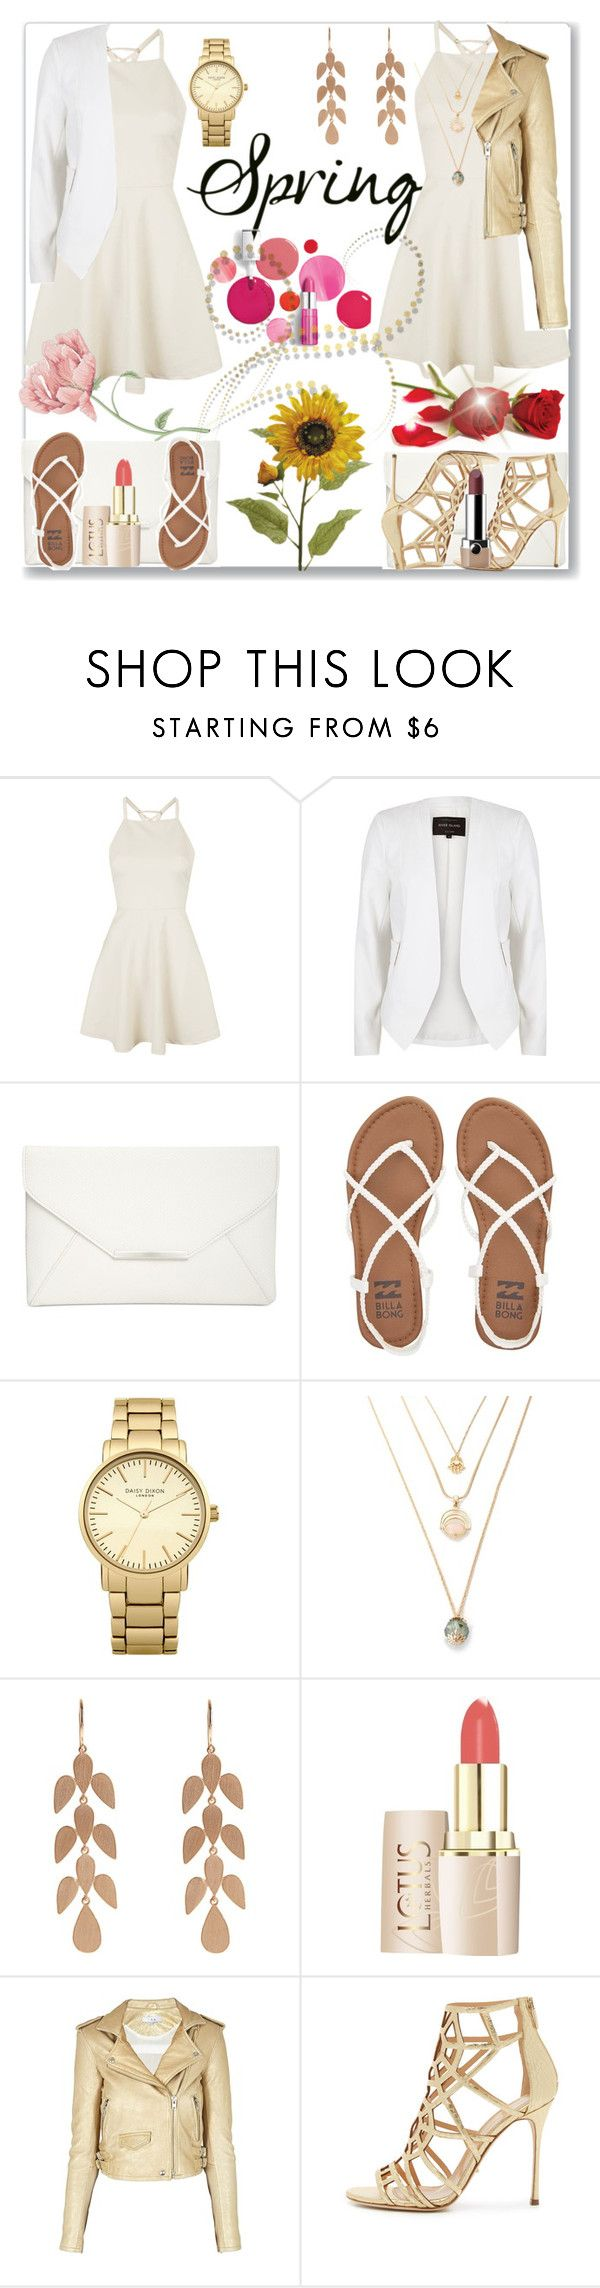 """""""Spring Day to Night Contest..."""" by detroitgurlxx ❤ liked on Polyvore featuring Topshop, River Island, Style & Co., Billabong, Irene Neuwirth, Clinique, IRO, Sergio Rossi and Marc Jacobs"""